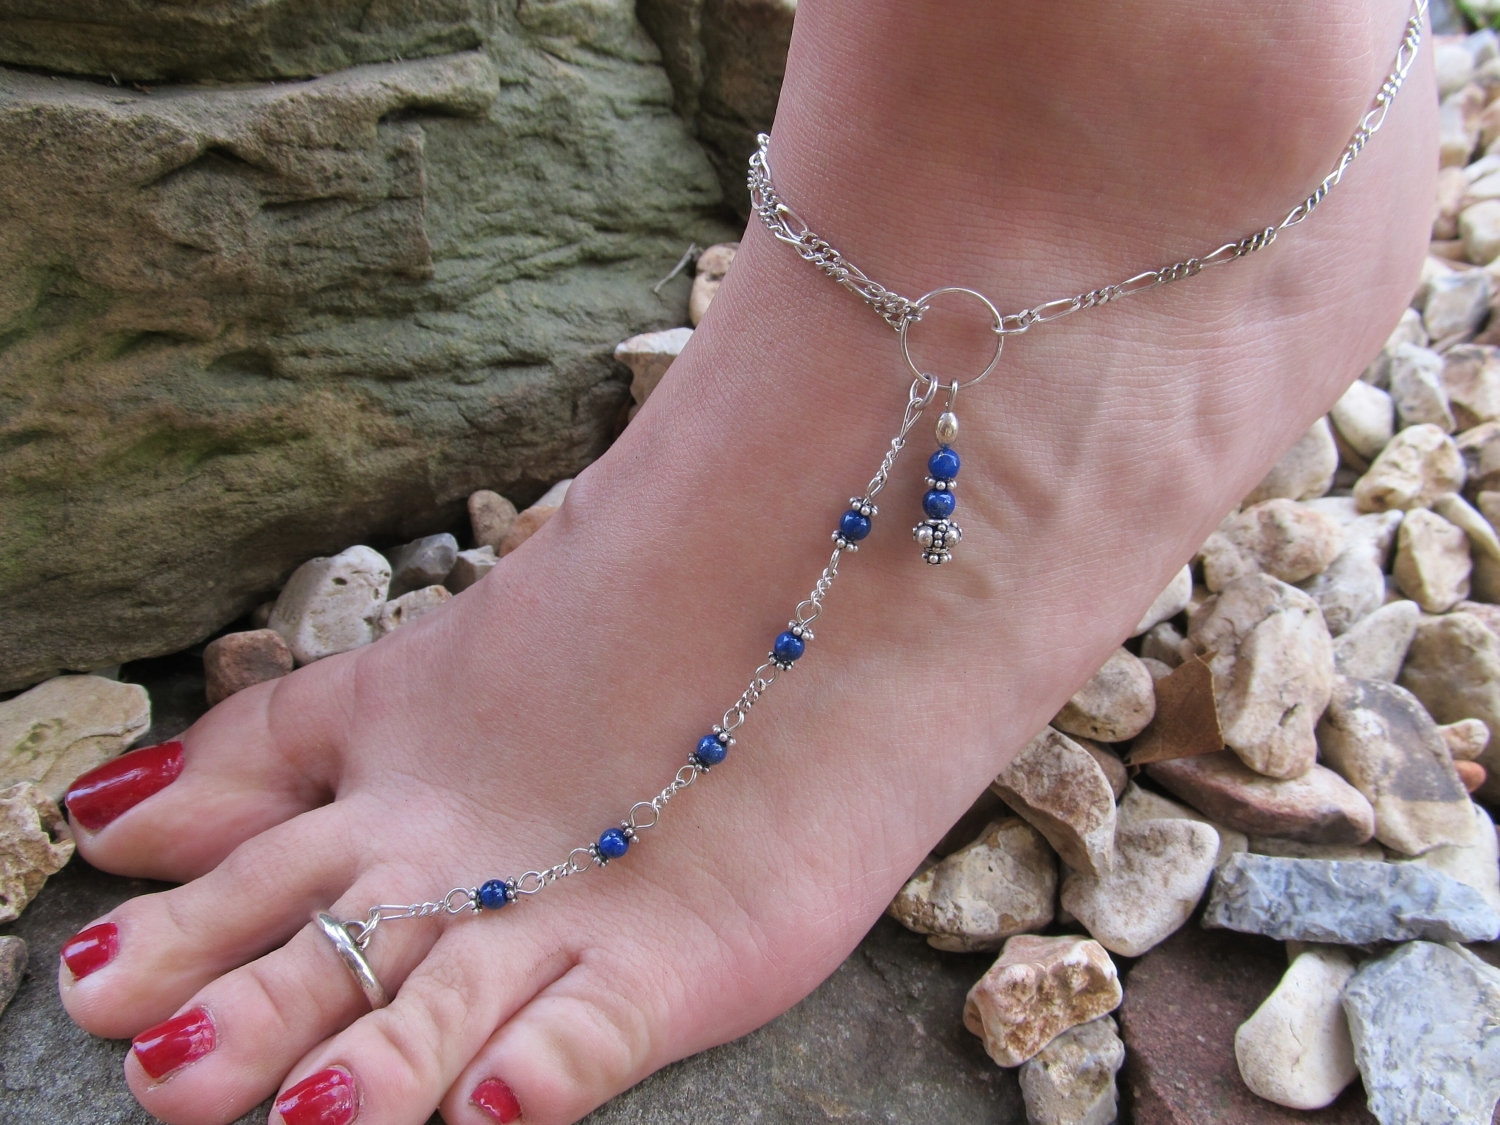 Anklet Deep Blue Lapis Sterling Silver Ankle Bracelet Toe Ring Within Most Recently Released Toe Rings With Diamonds (View 2 of 15)